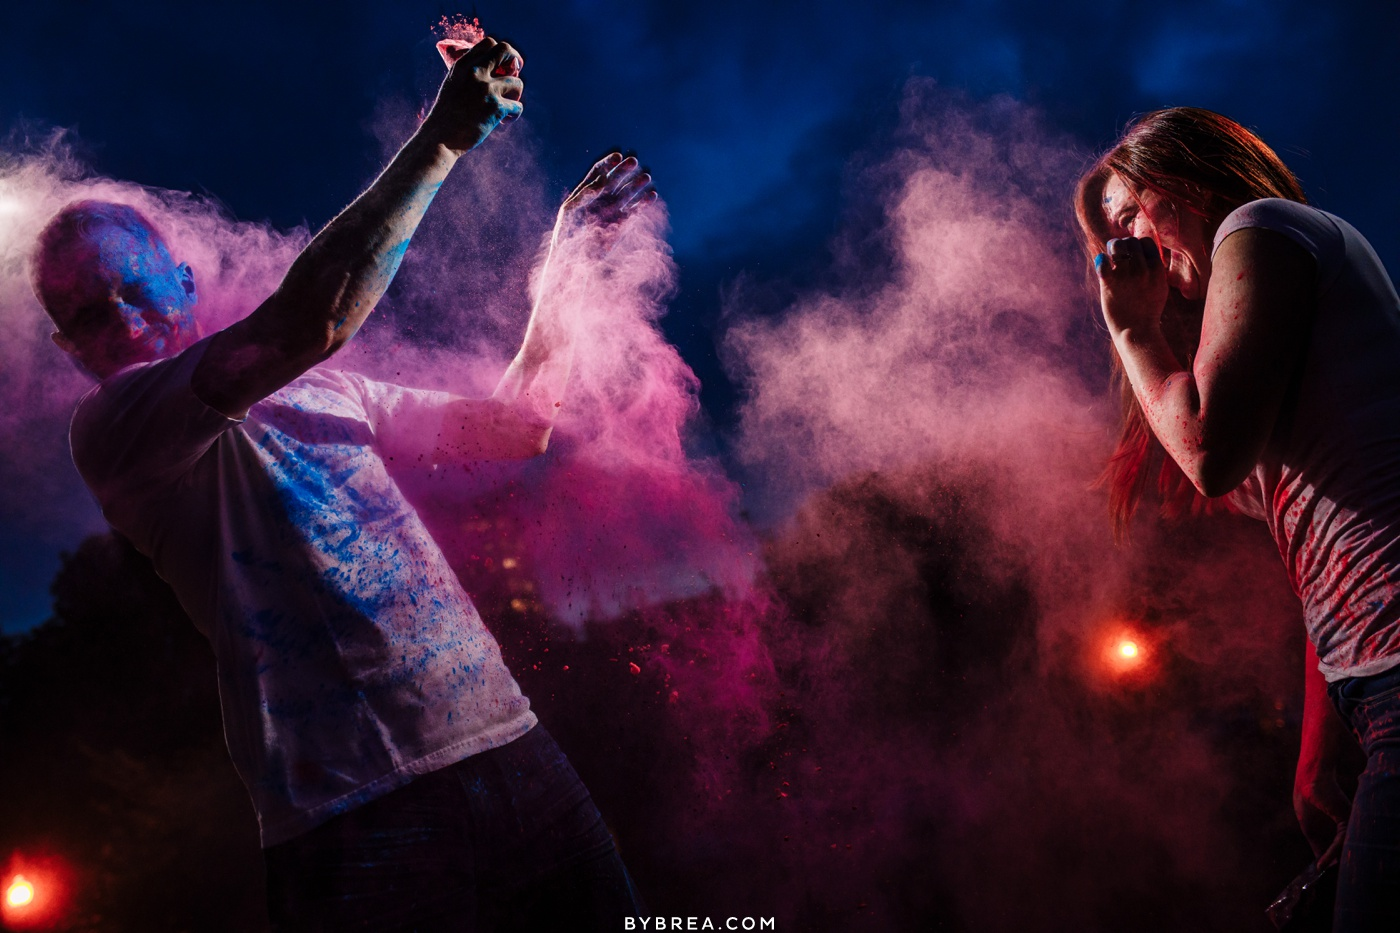 Couple having a holi powder fight night time engagement photograph Baltimore